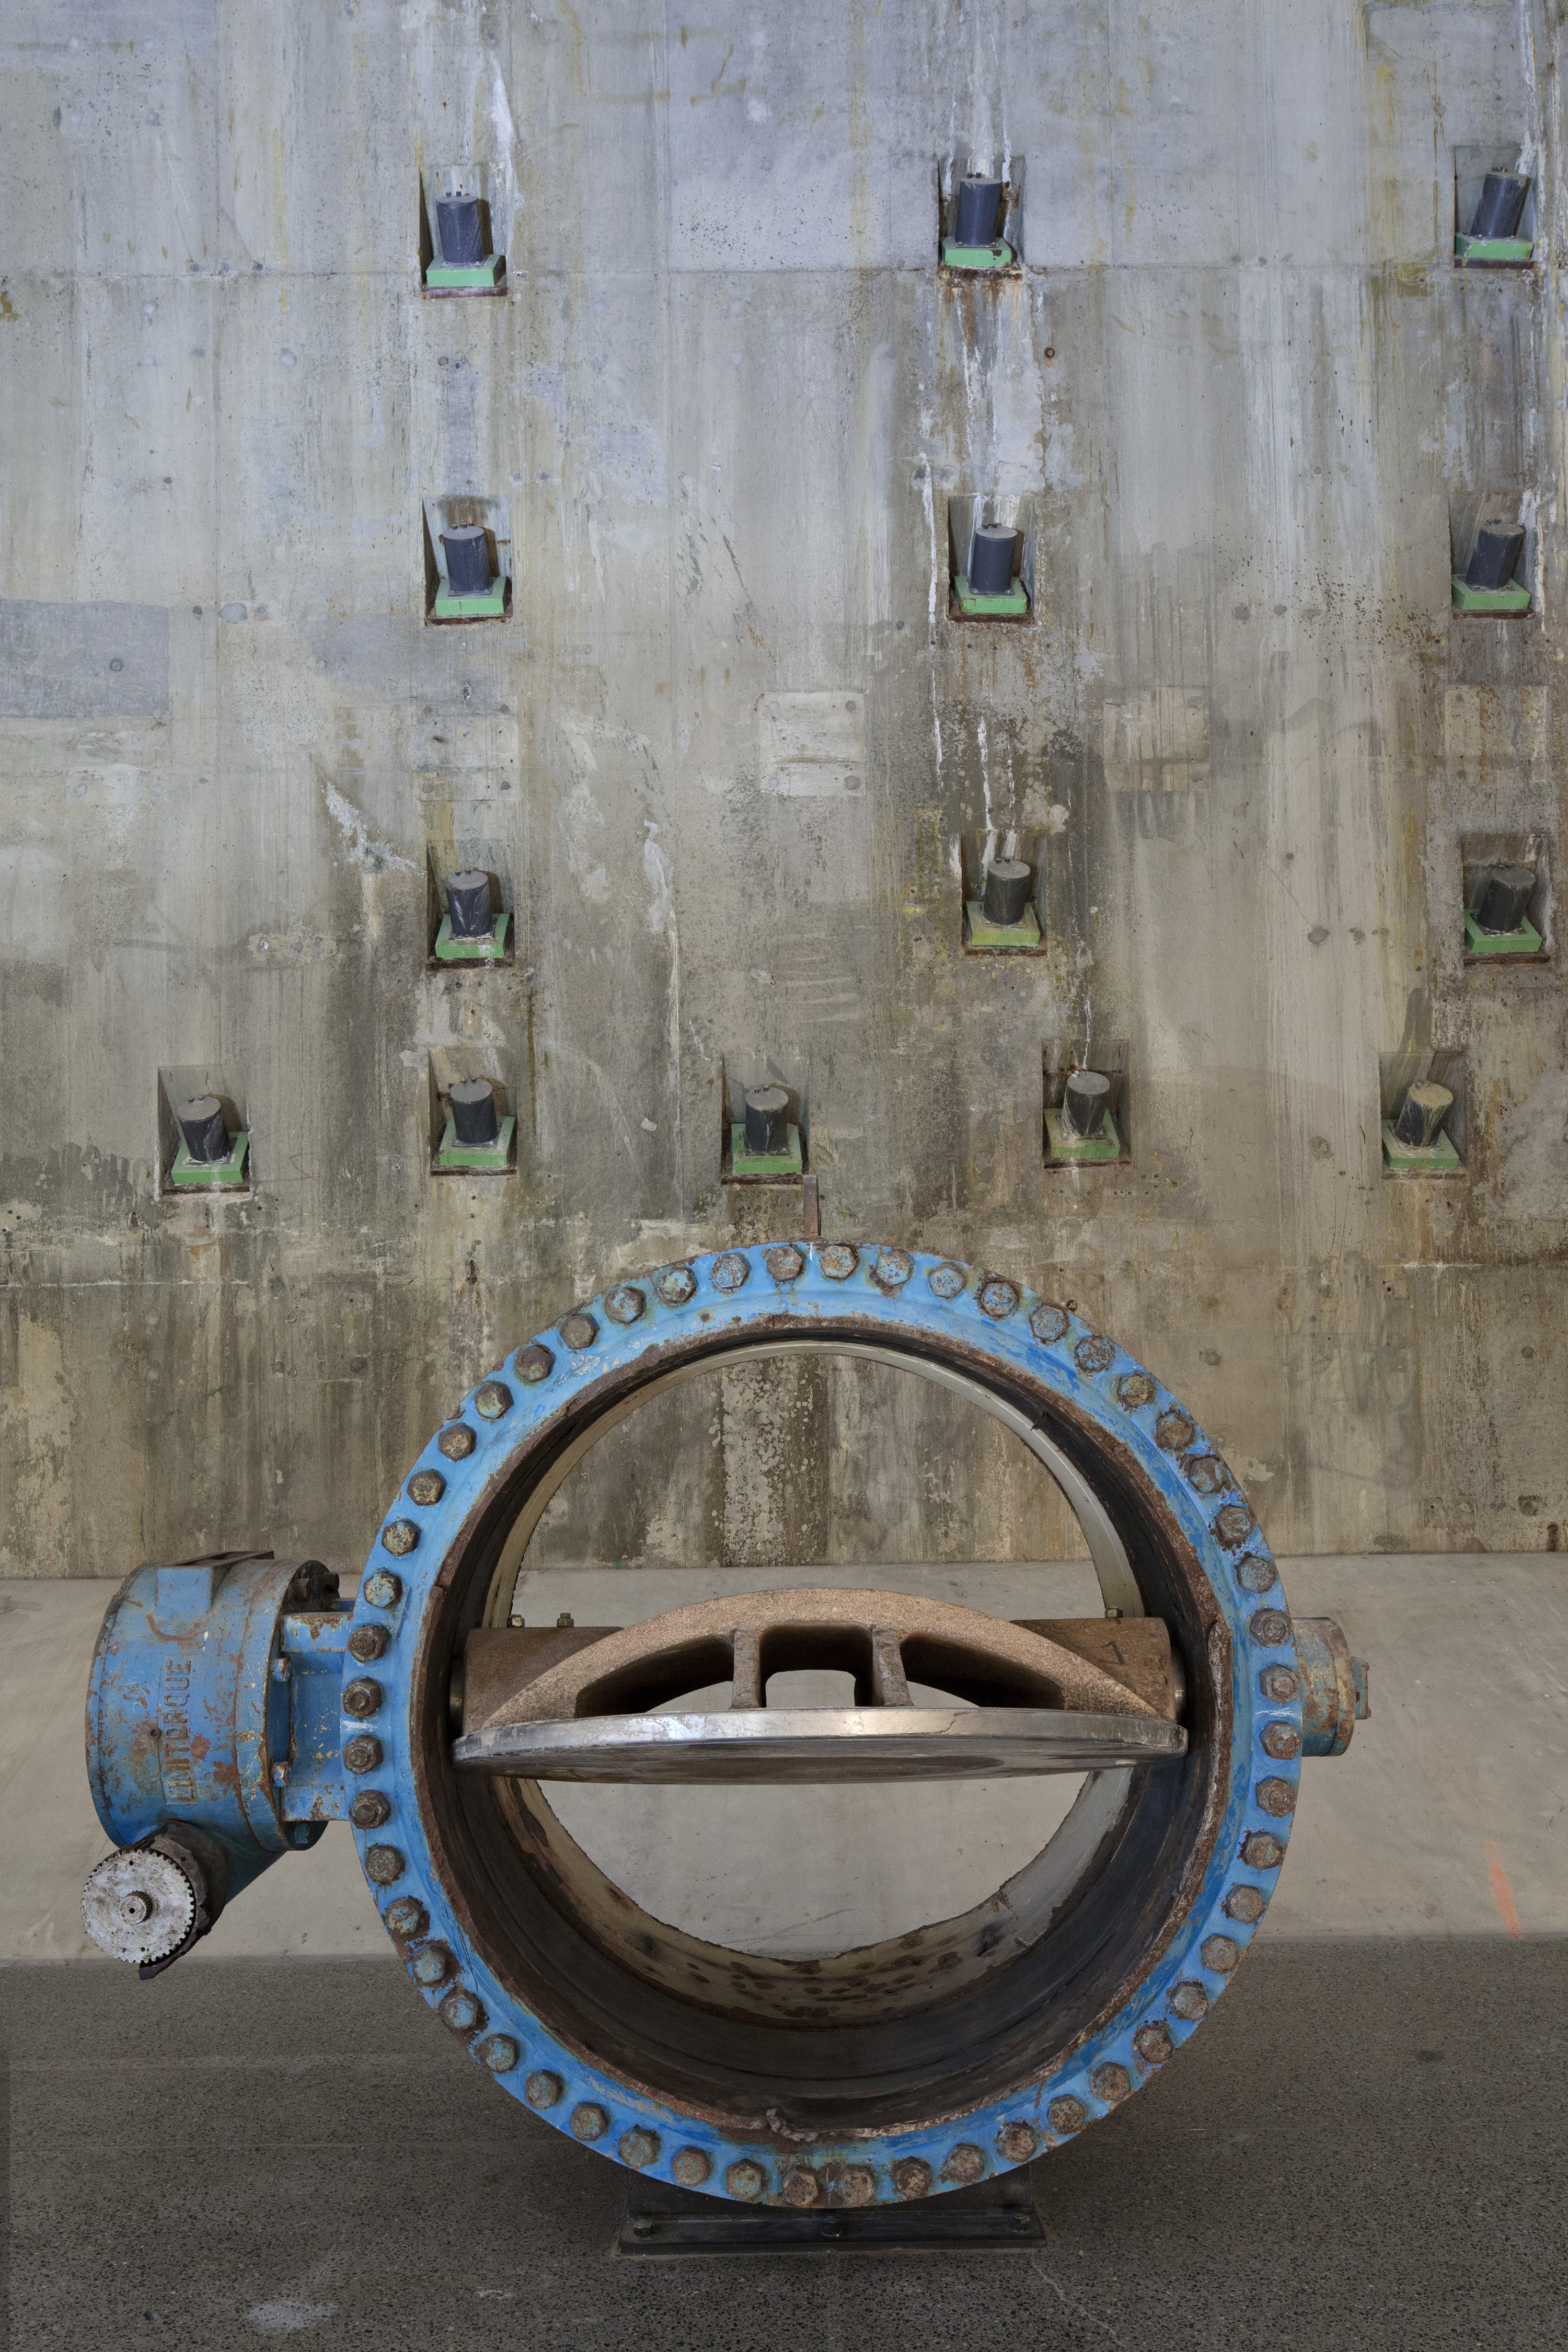 A river line valve sits in the museum's Foundation Hall before a portion of the Trade Center's slurry wall, a barrier that held firm after the towers collapsed, preventing the Hudson River from inundating lower Manhattan.